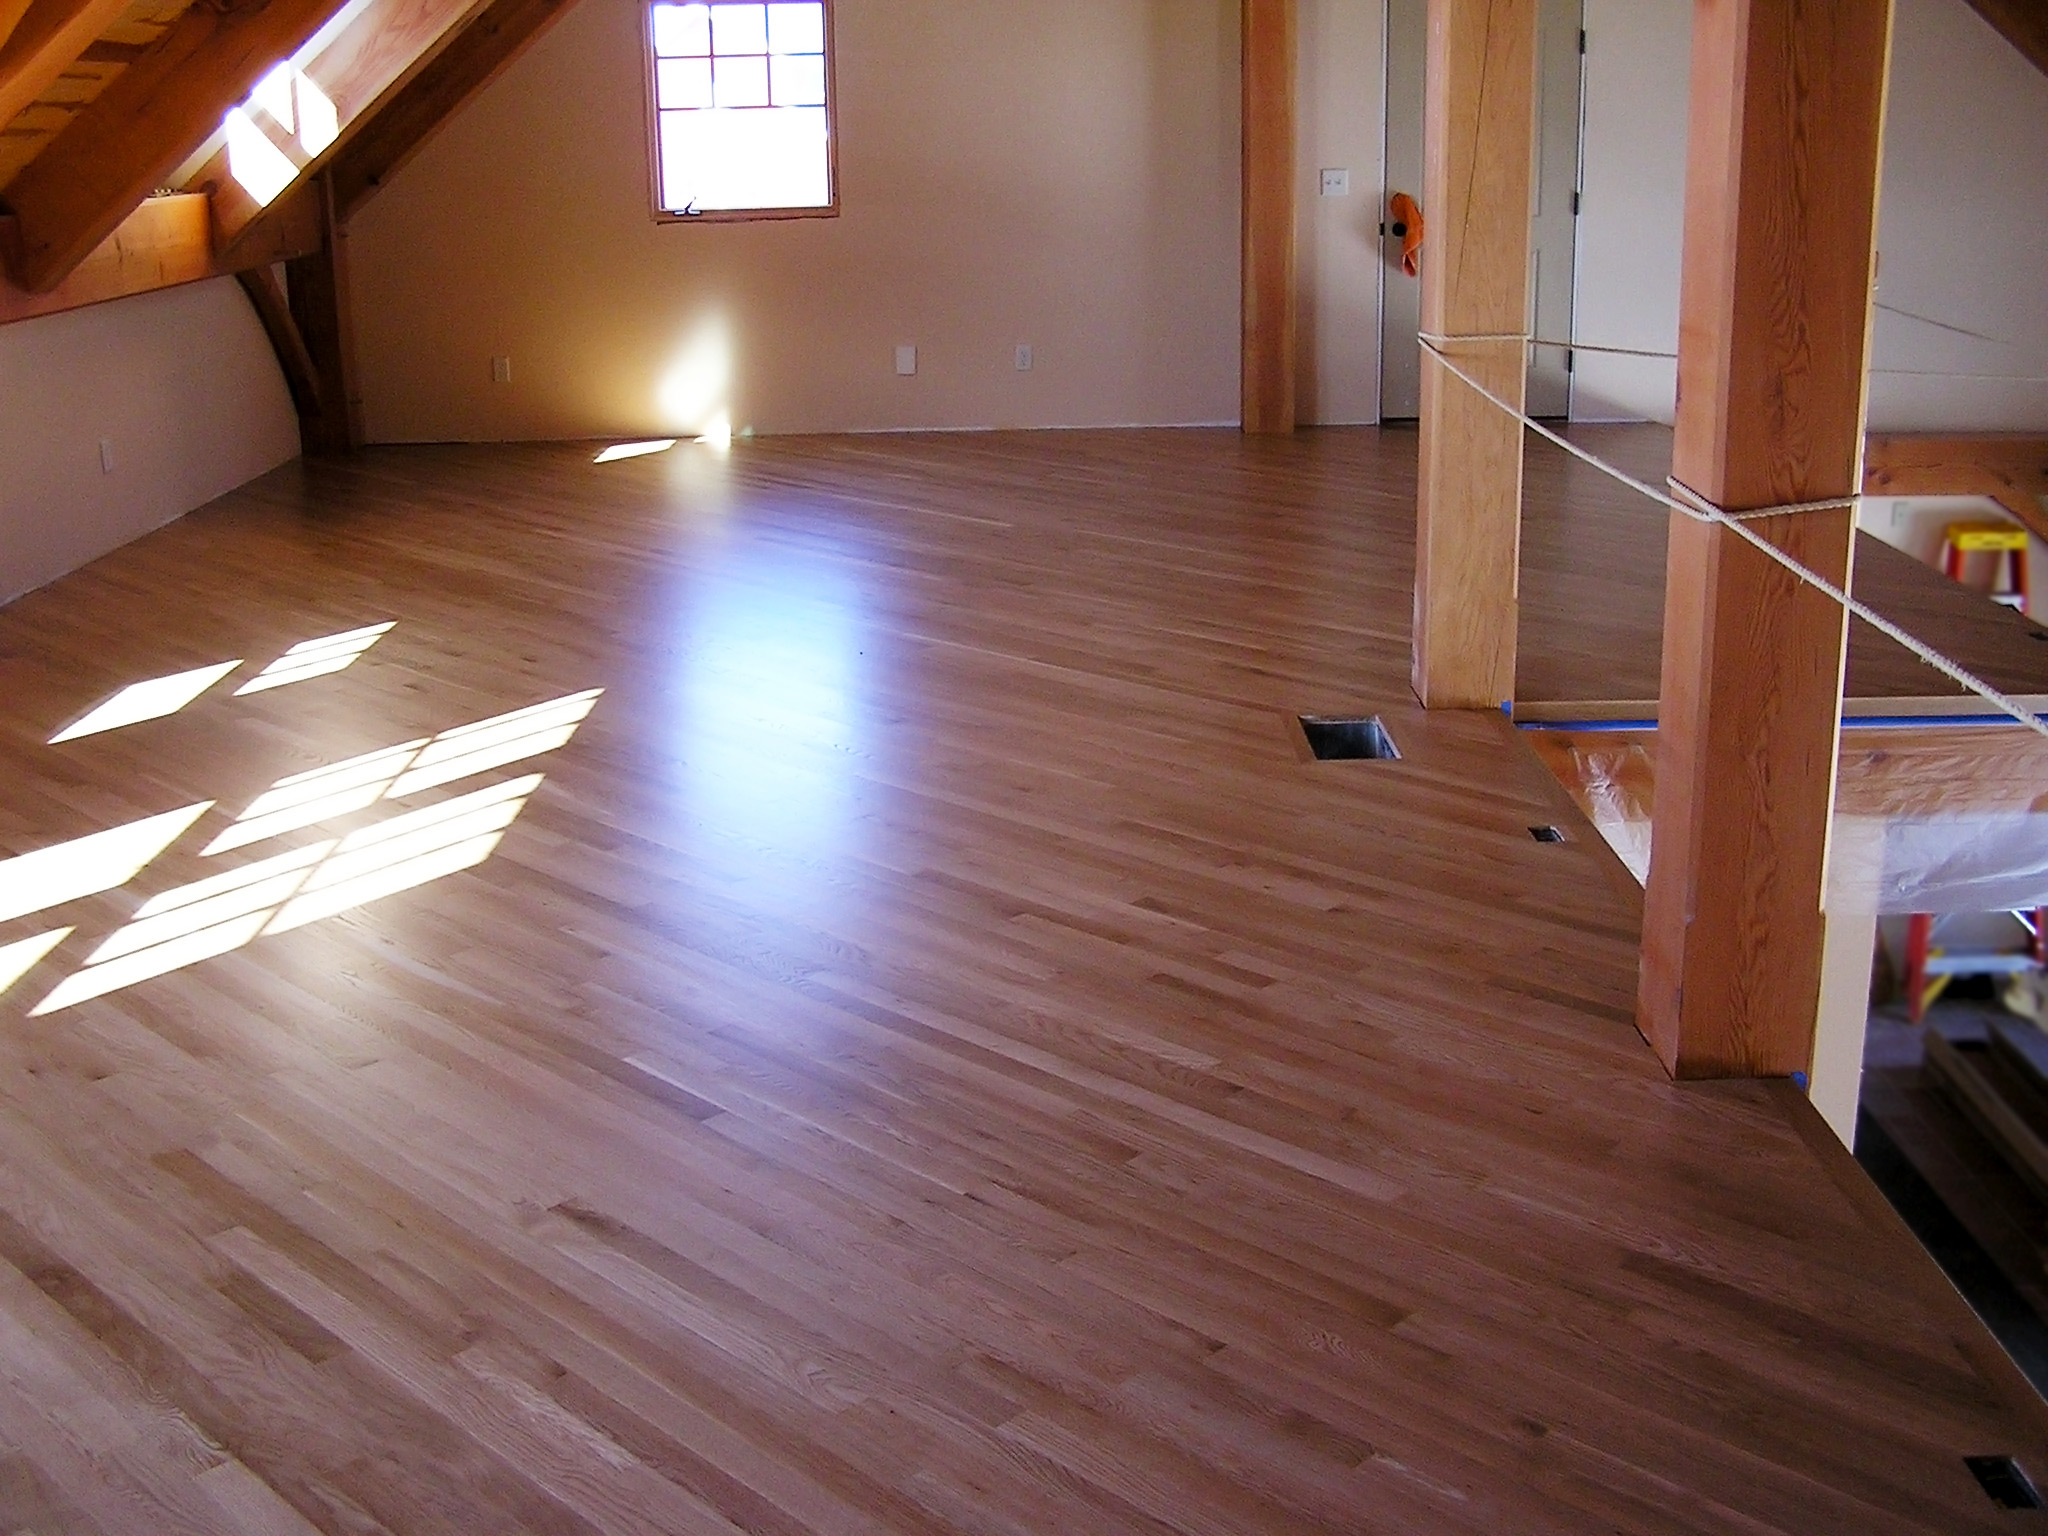 Hardwood floor bamboo flooring installation in dunn county for Custom hardwood flooring